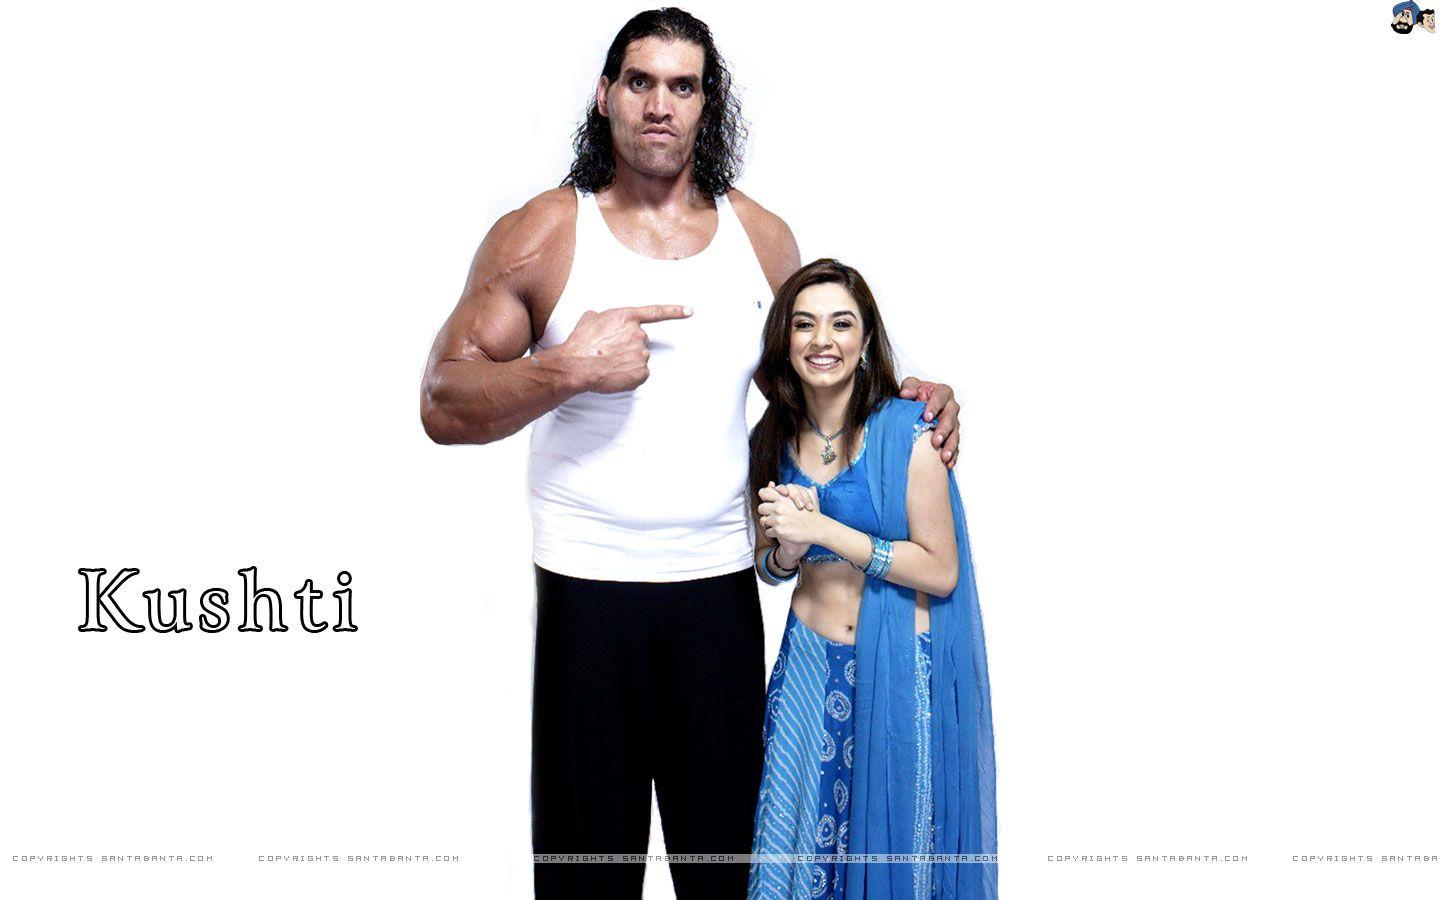 Wallpapers Subtle The Great Khali In Kushti 1440x900